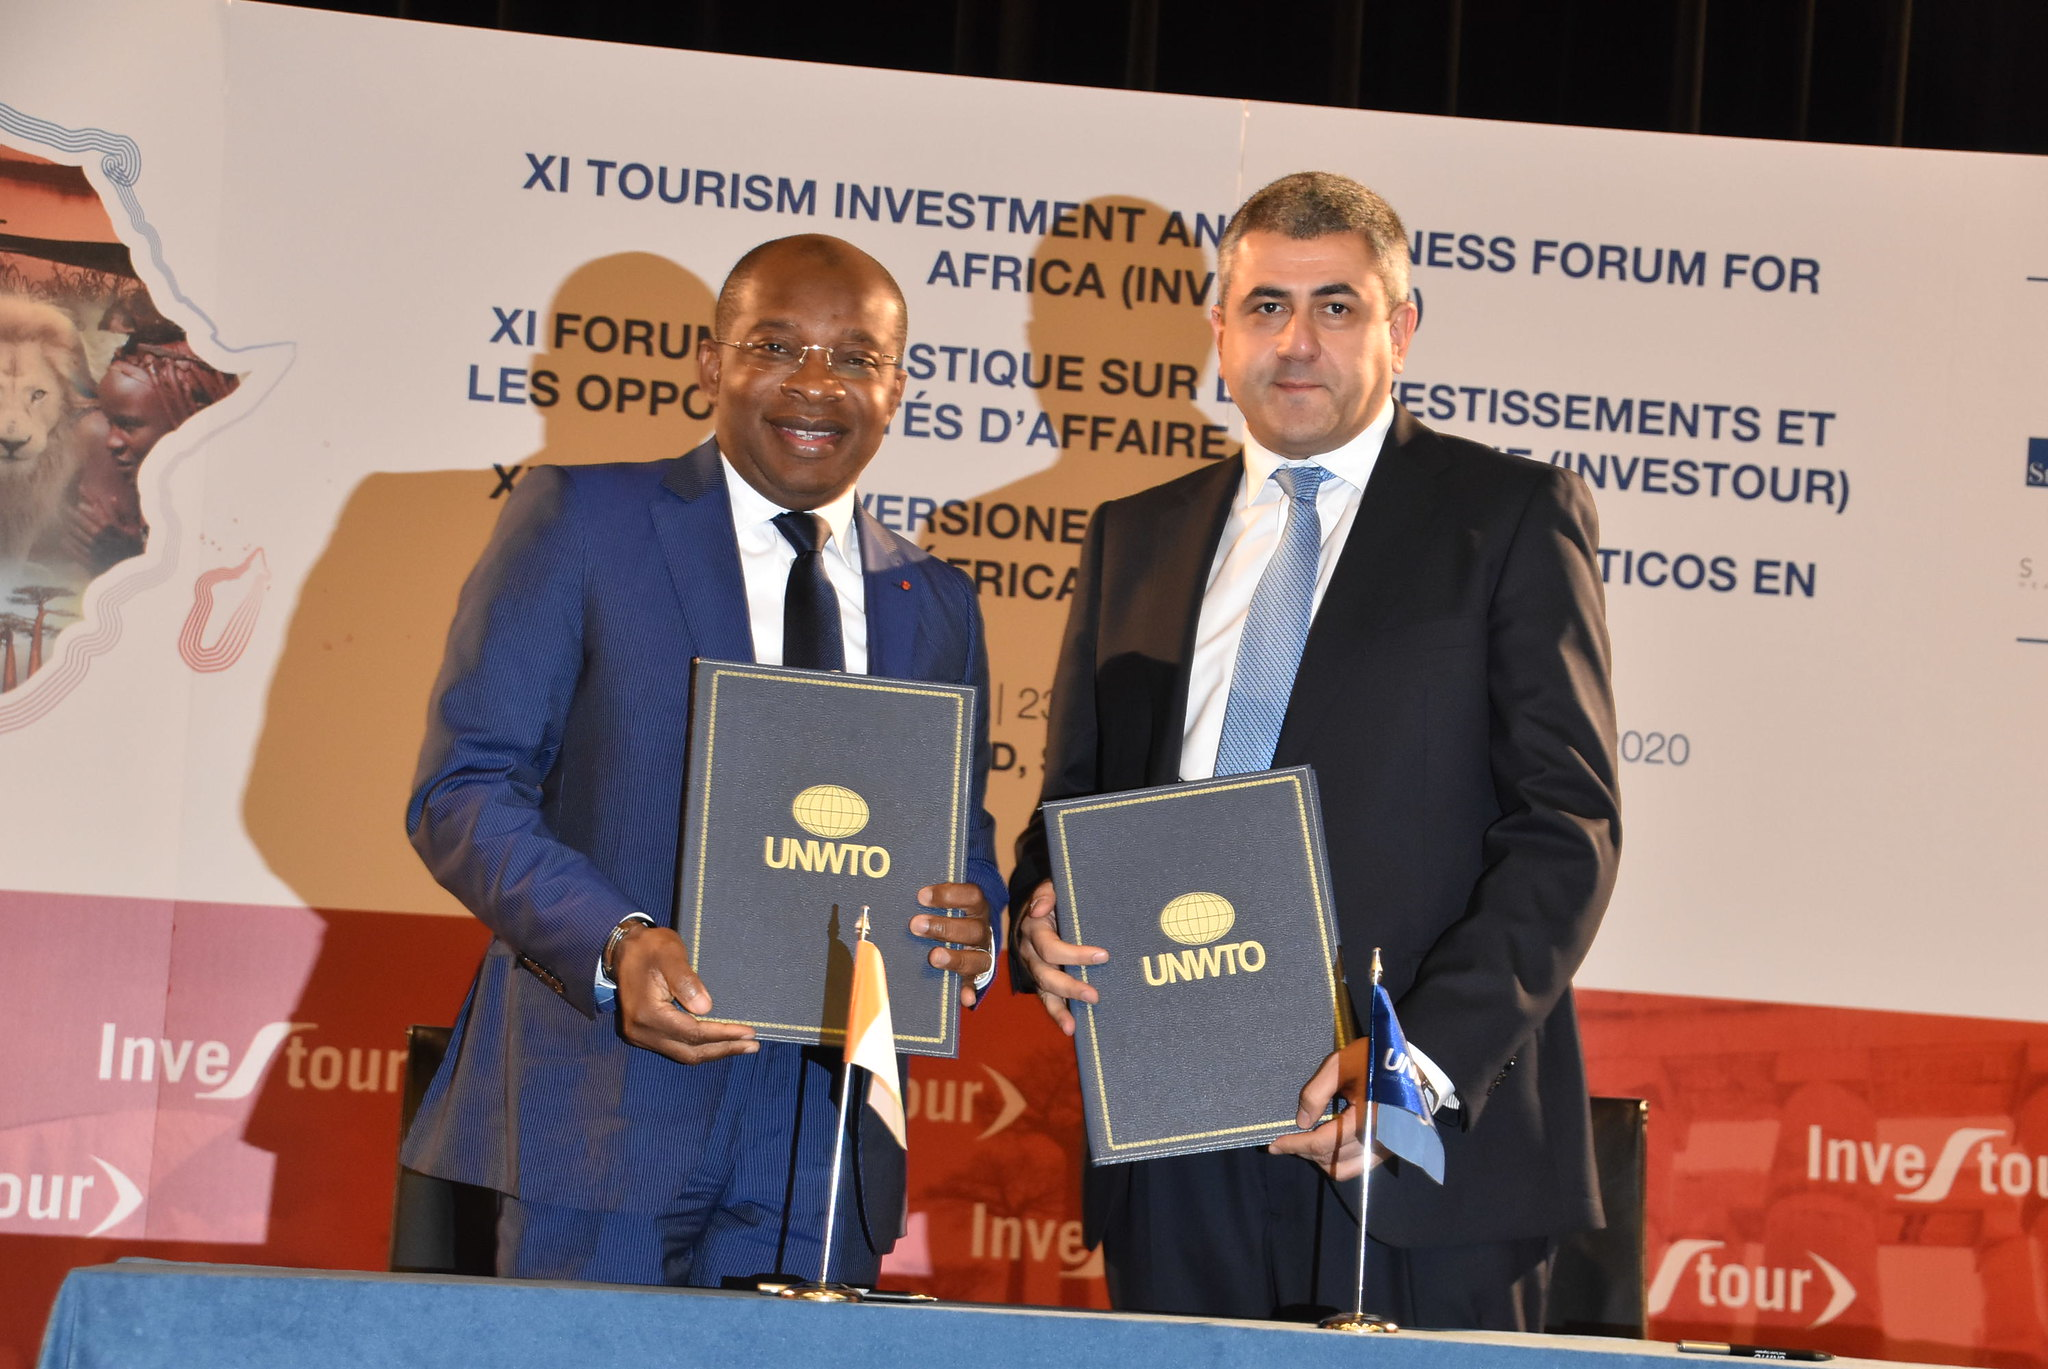 Côte d'Ivoire signs deal to host Global Investment Forum on Tourism